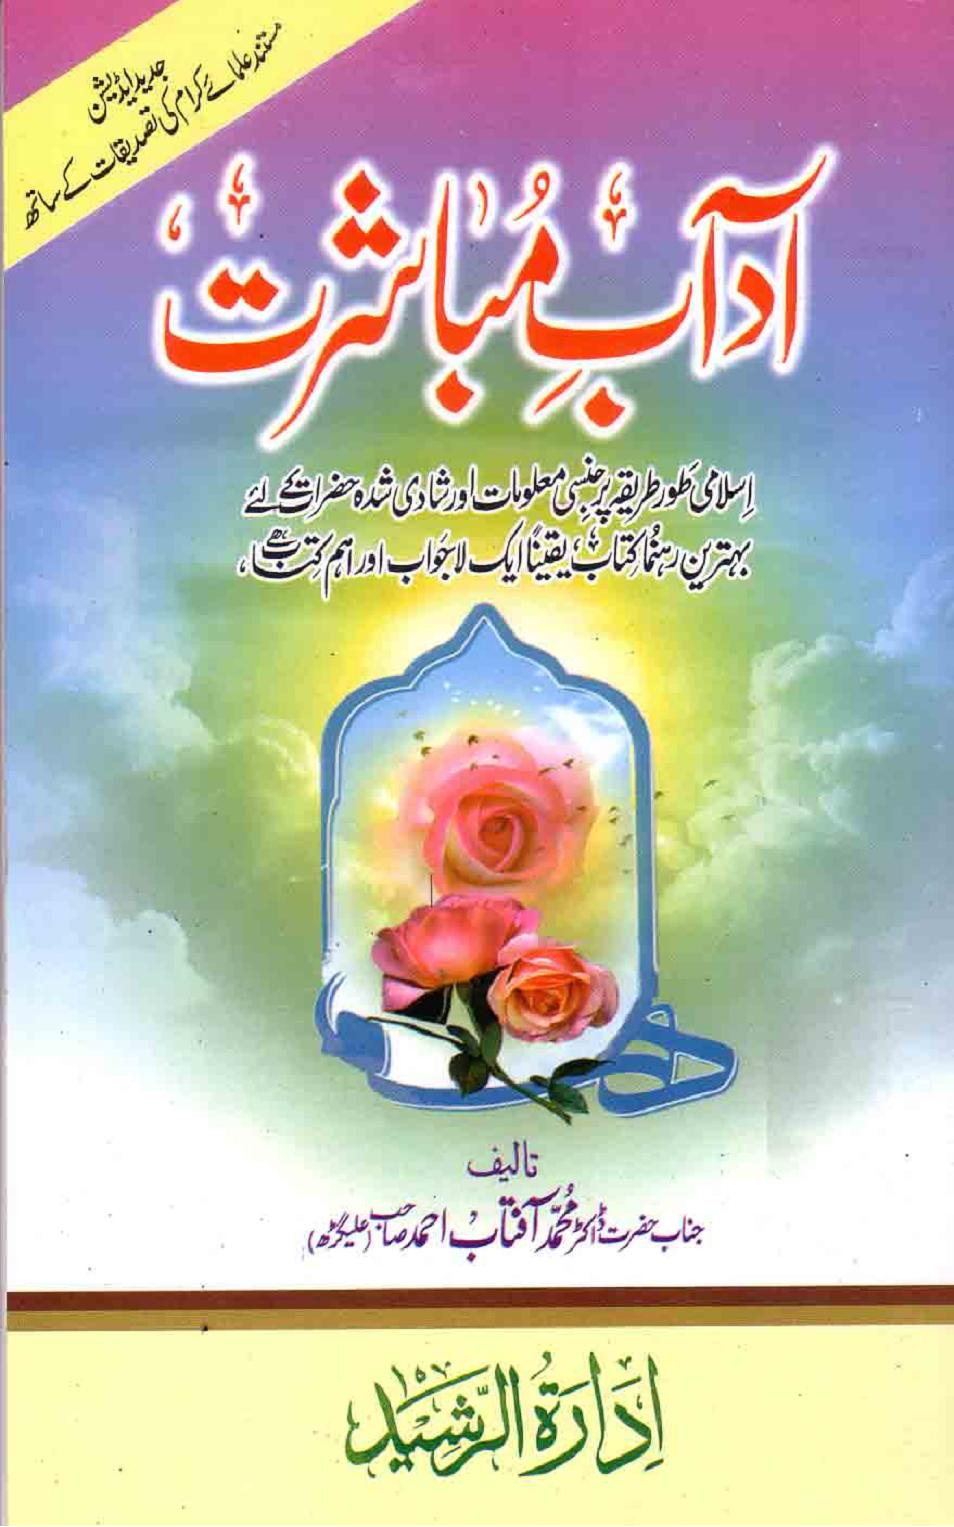 Free download urdu islamic books in pdf.